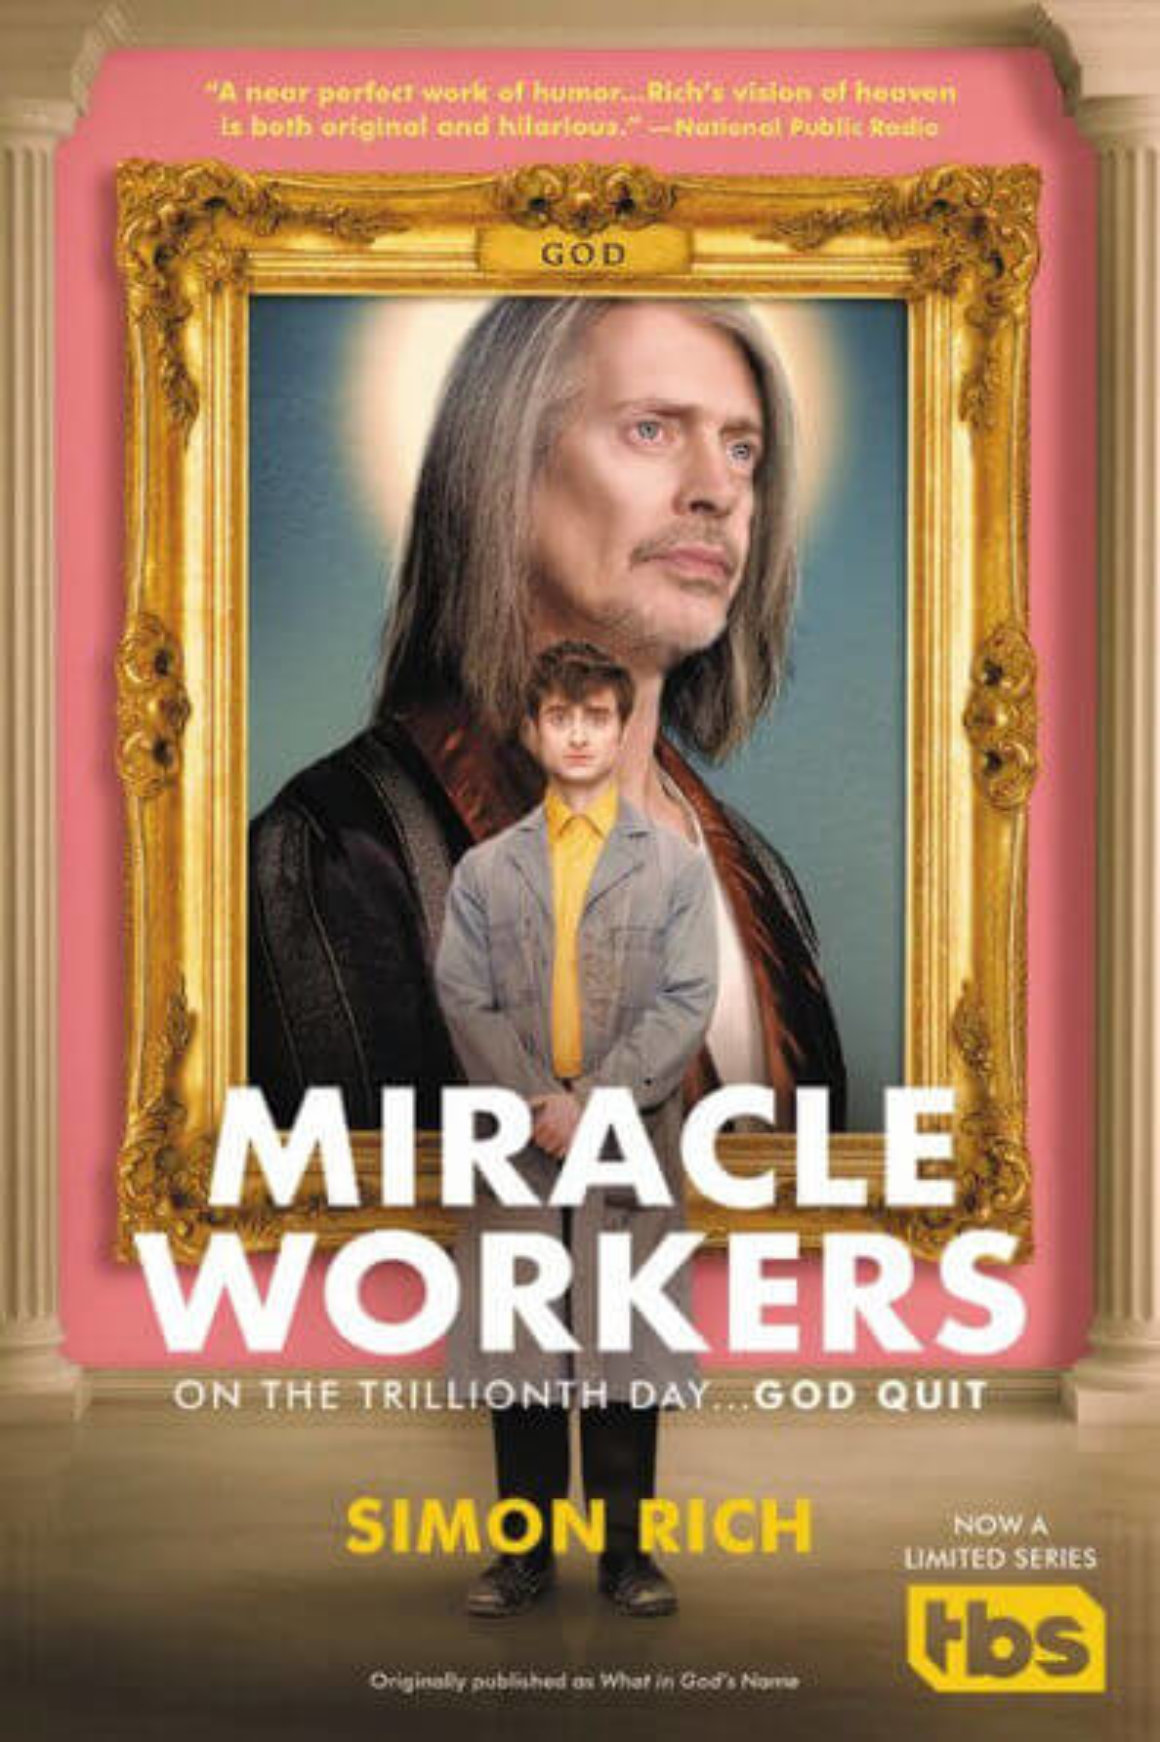 Rich - Miracle Workers Movie